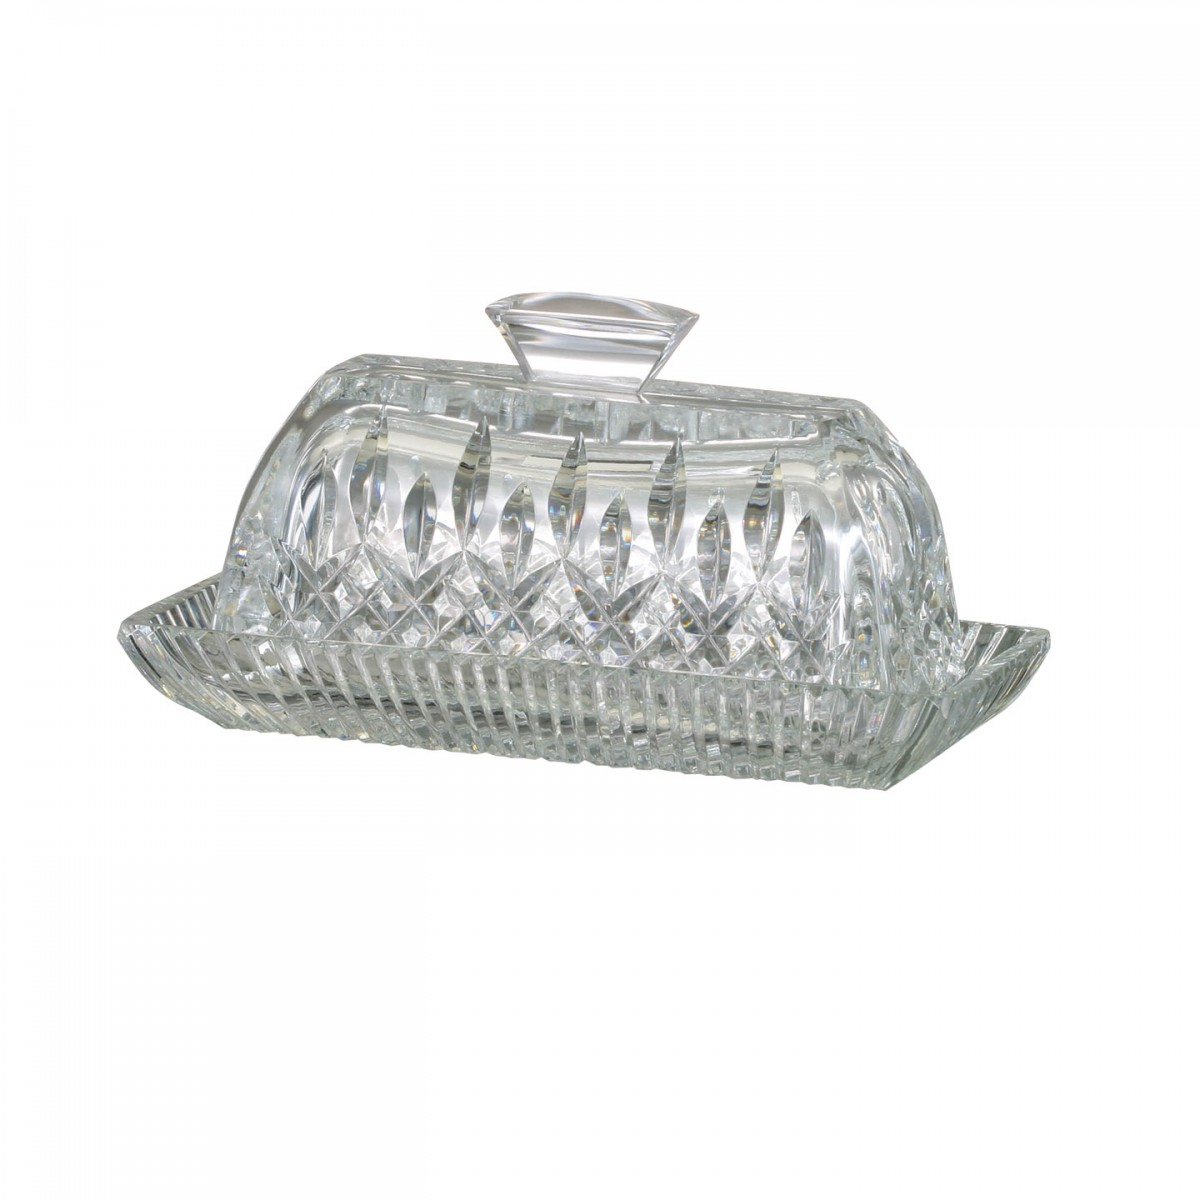 waterford-lismore-covred-butter-dish-024258374805.jpg